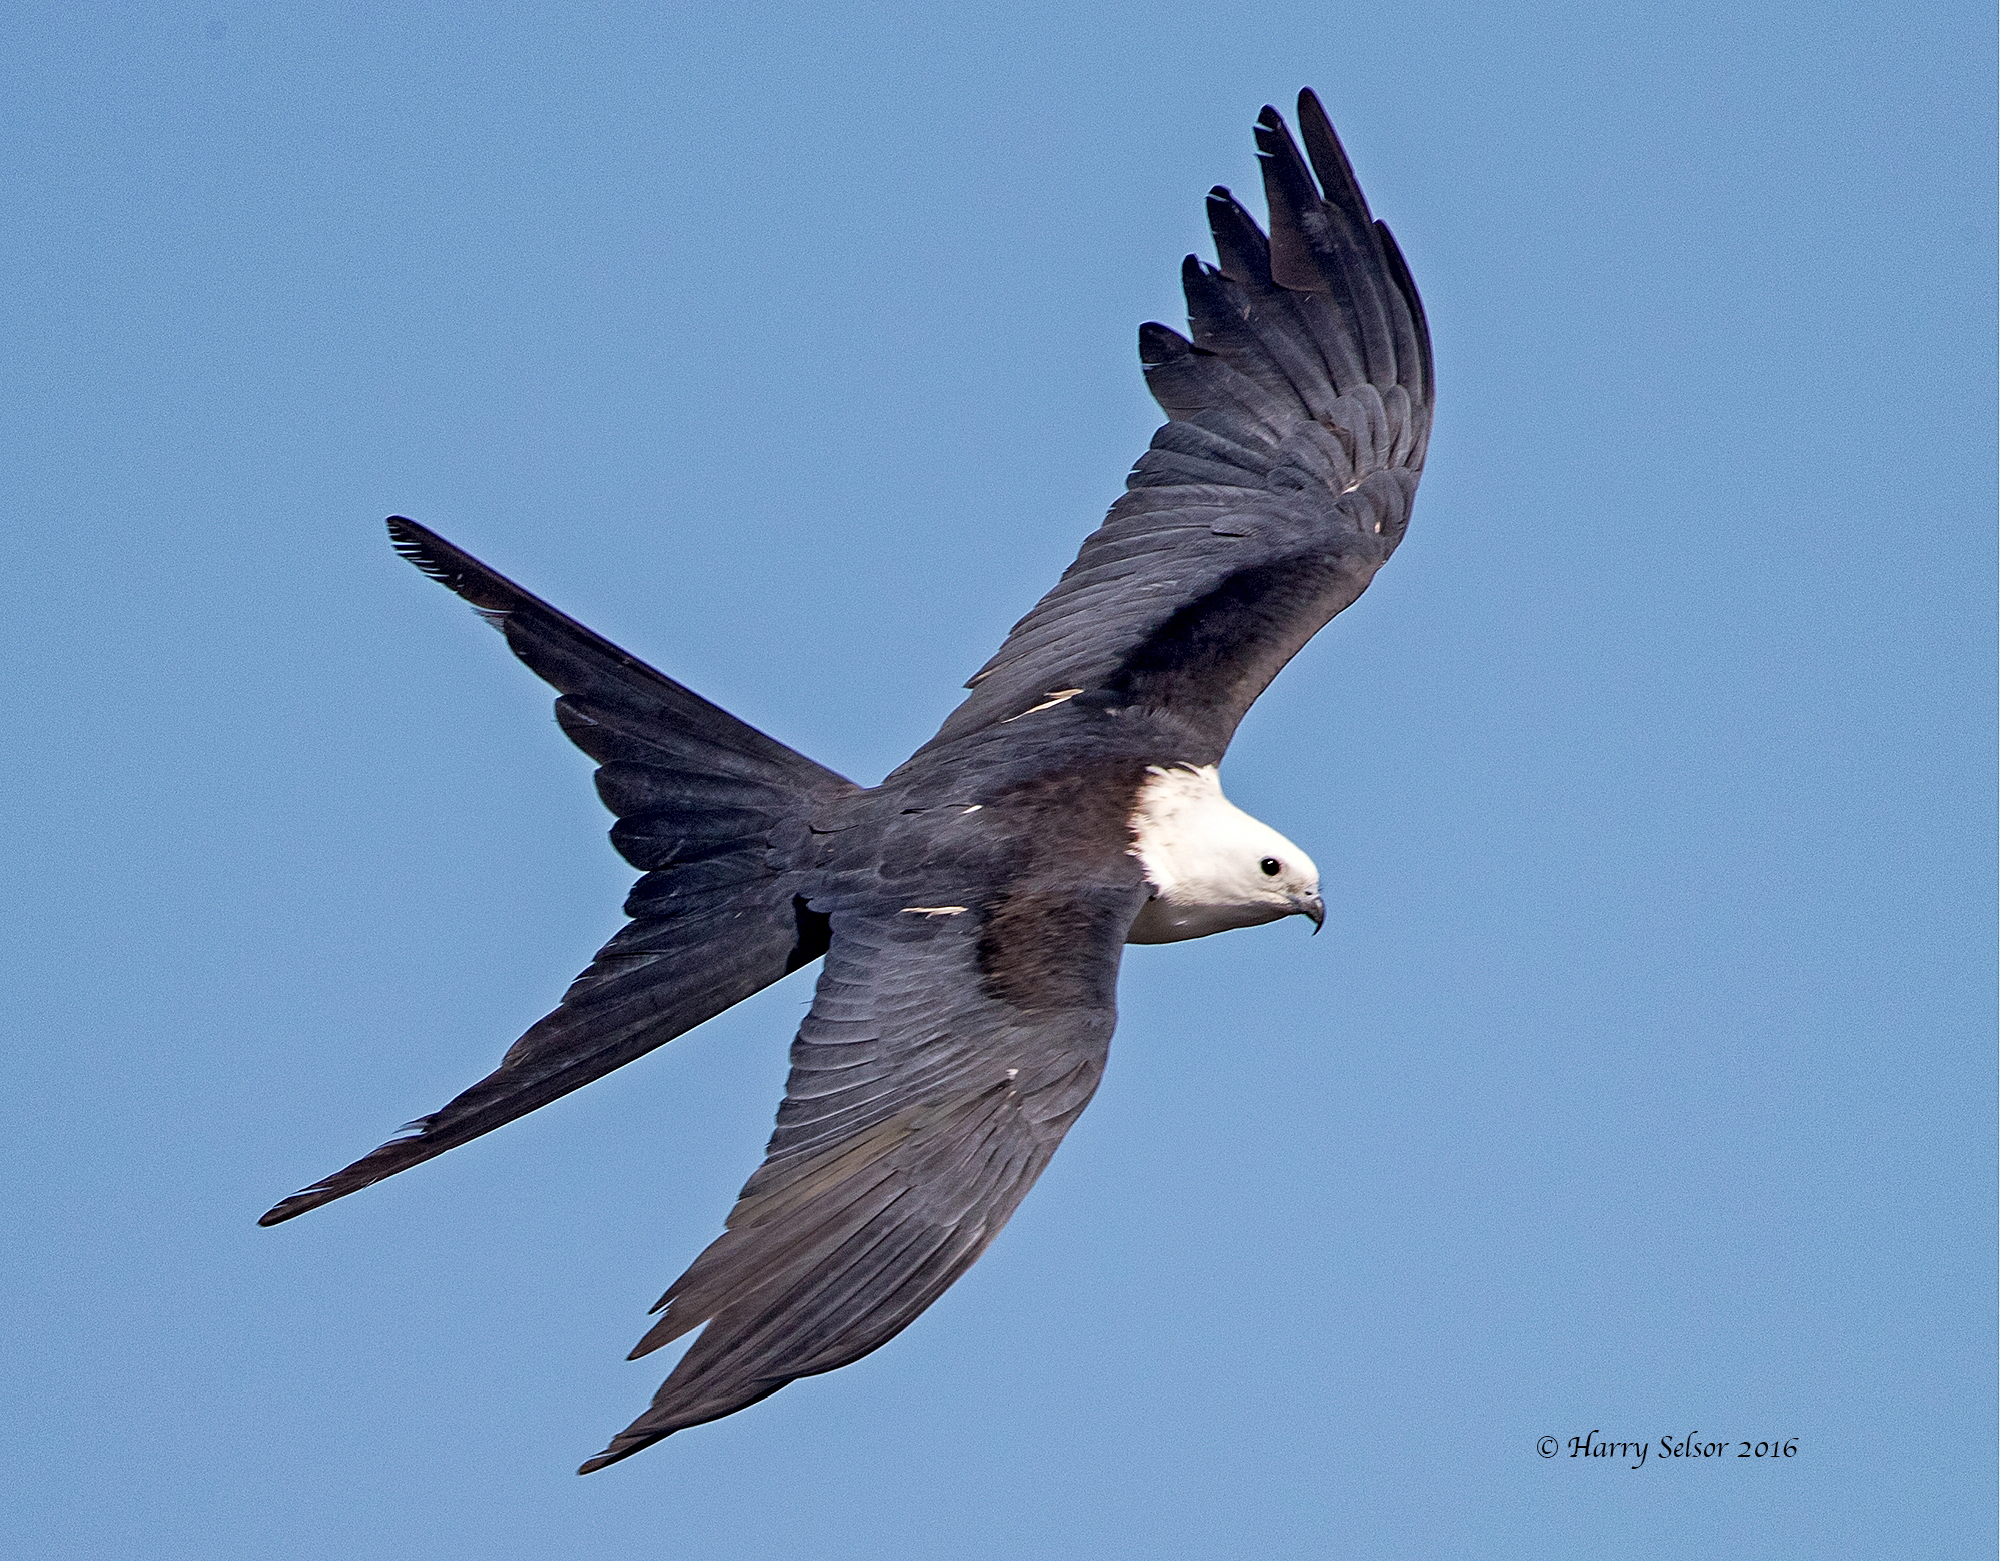 Florida has a large number of the undocumented Immigrants, the Swallow-tailed Kite from South America.